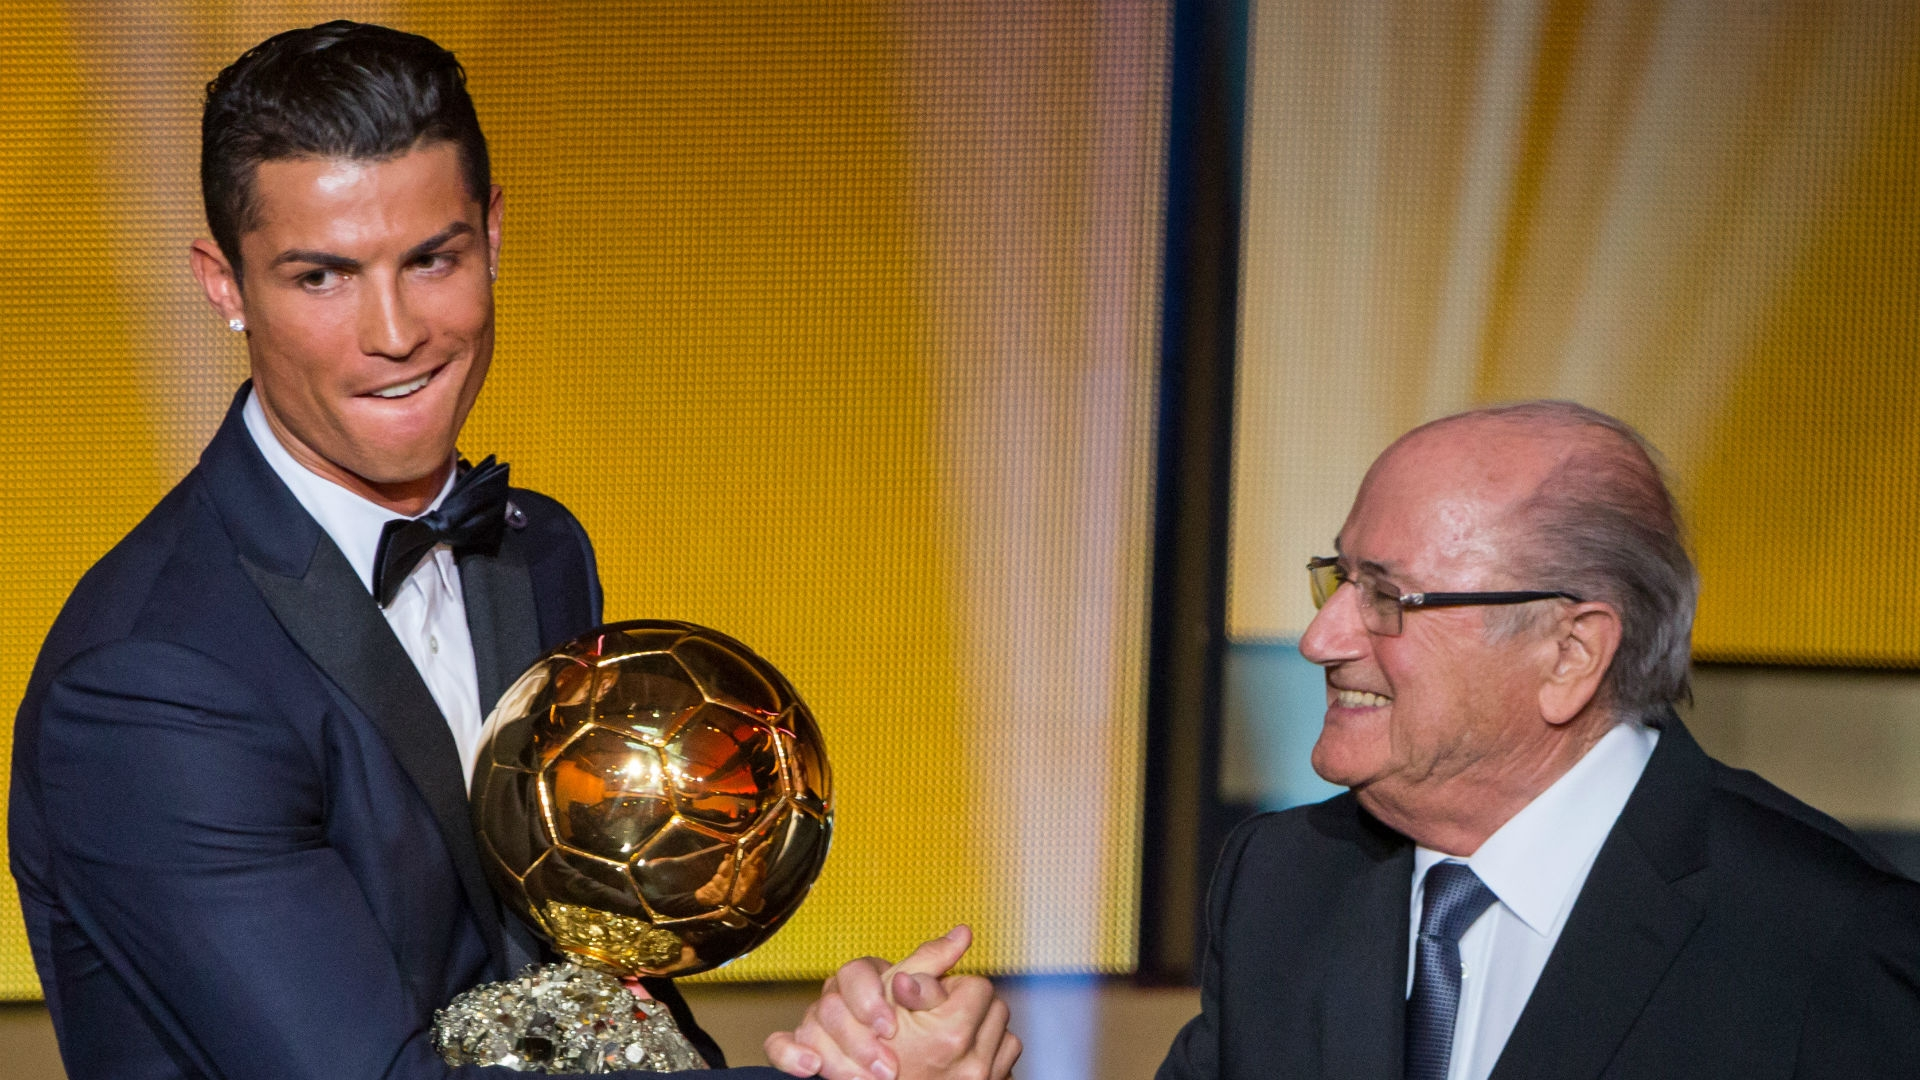 Sepp Blatter offering Golden Ball award to Cristiano Ronaldo